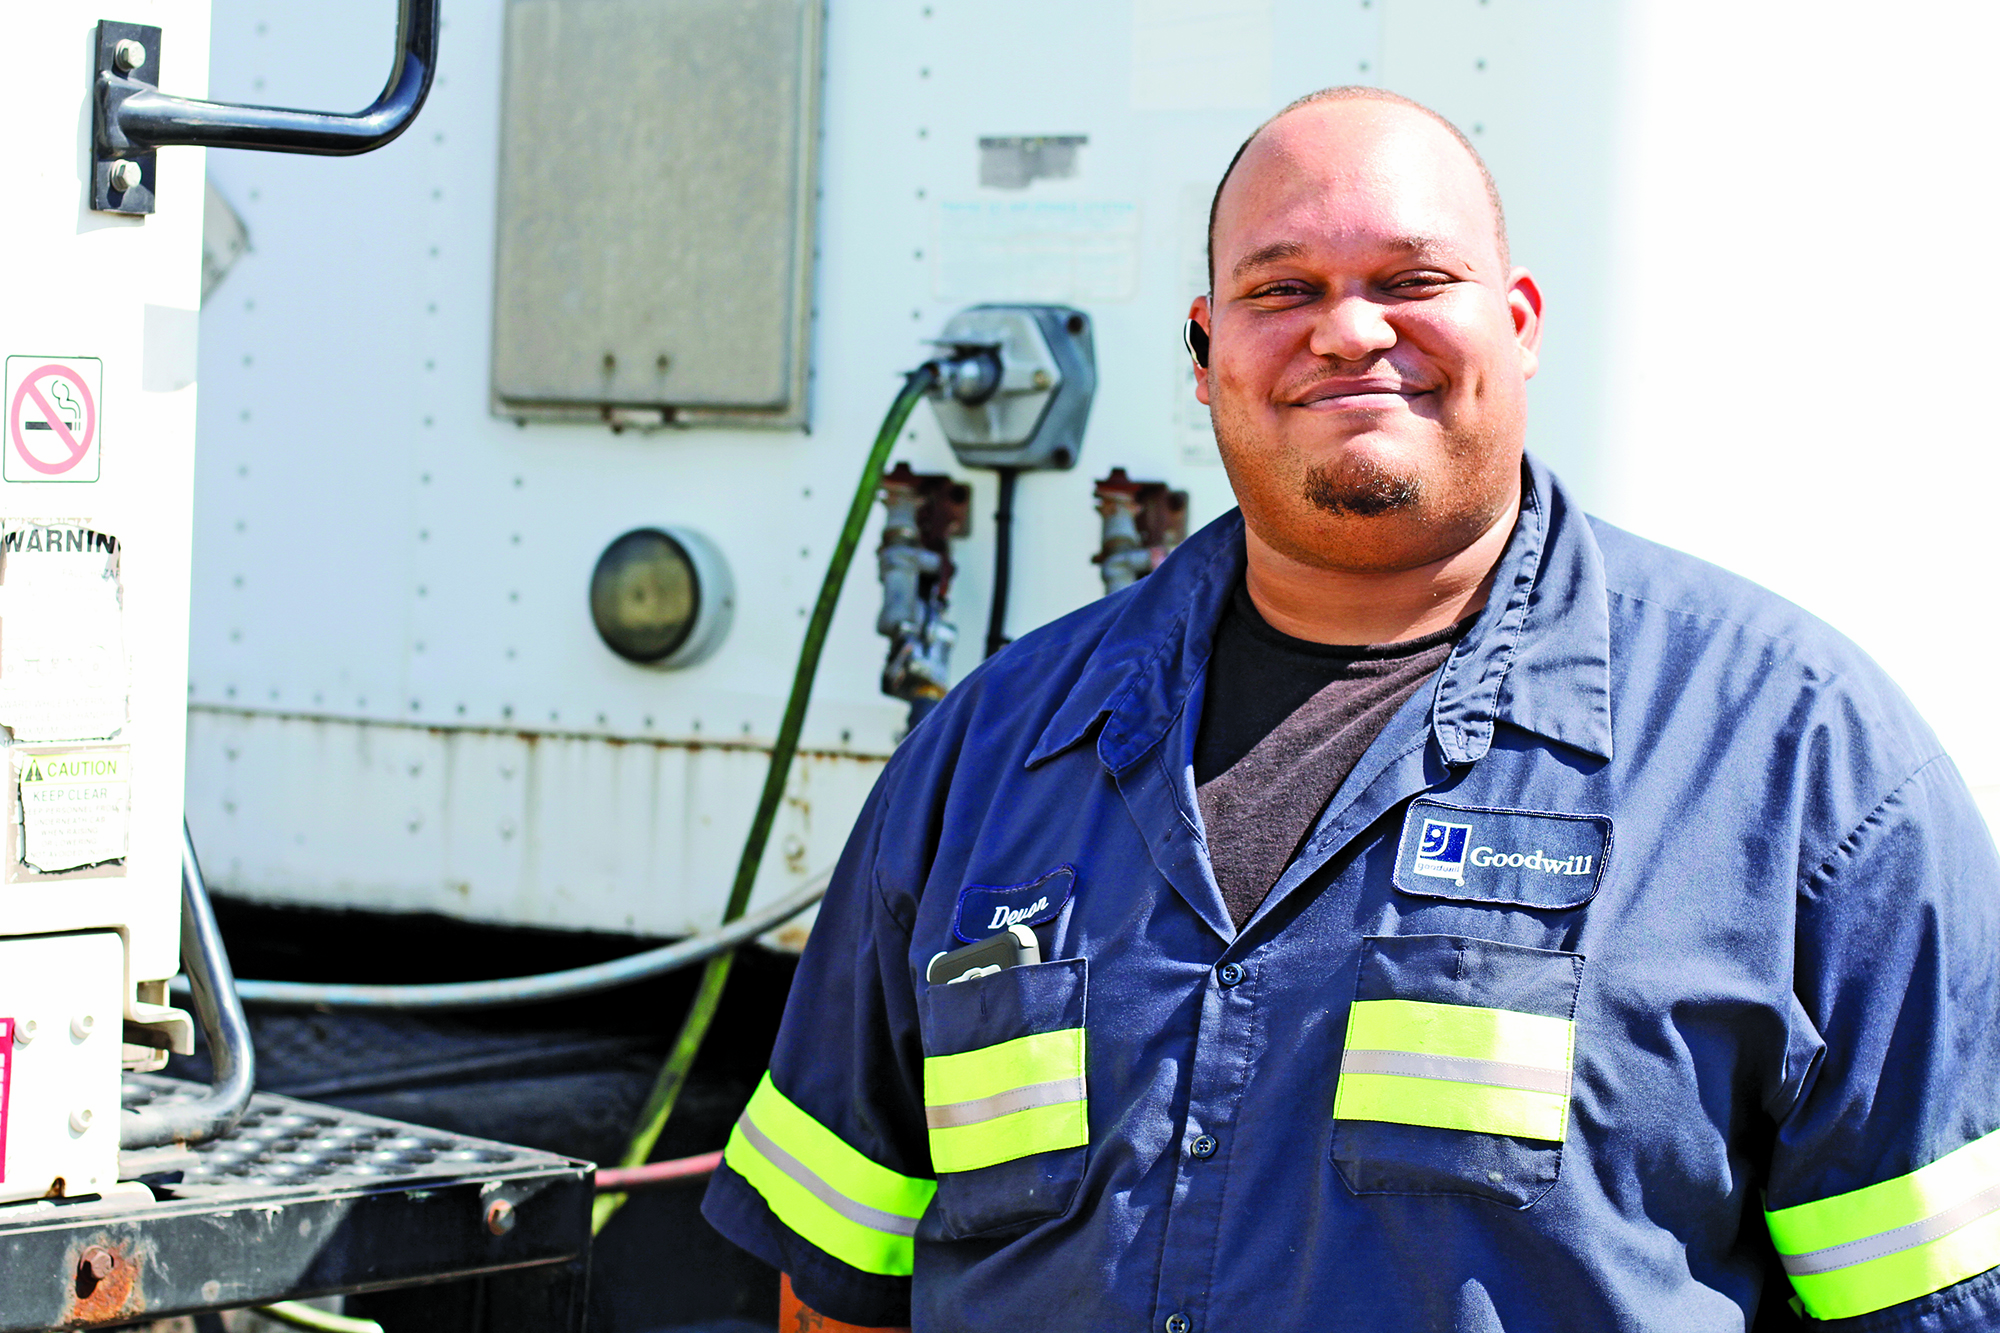 With Goodwill's Help, Young Man Makes U-Turn on Toubled Life